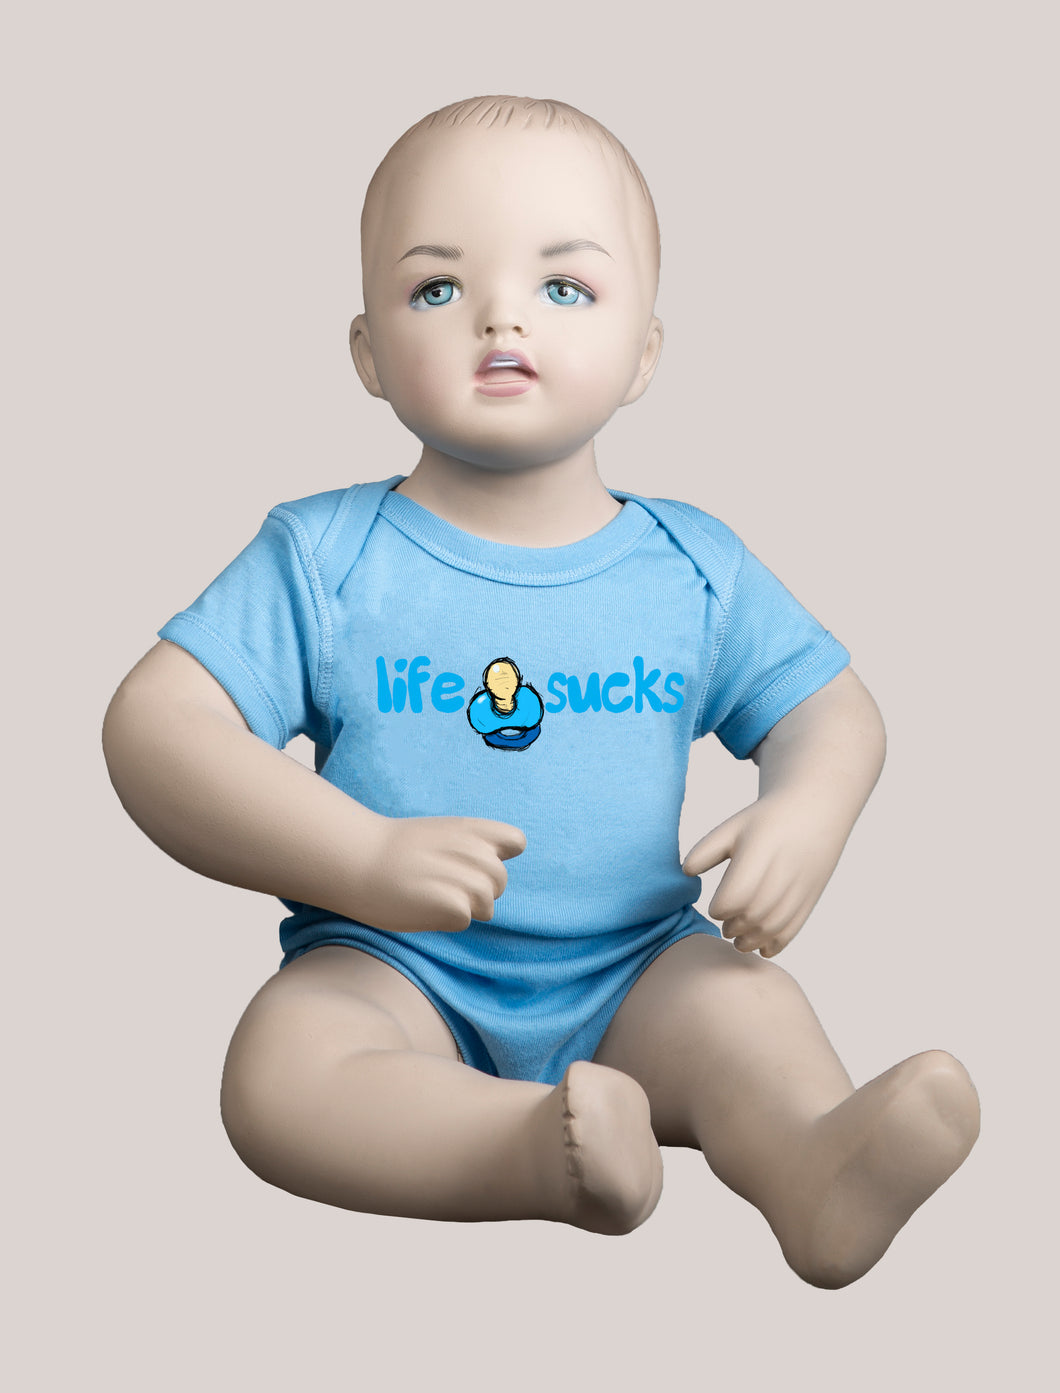 LIFE SUCKS Short-Sleeve Baby Bodysuit Blue/Blue